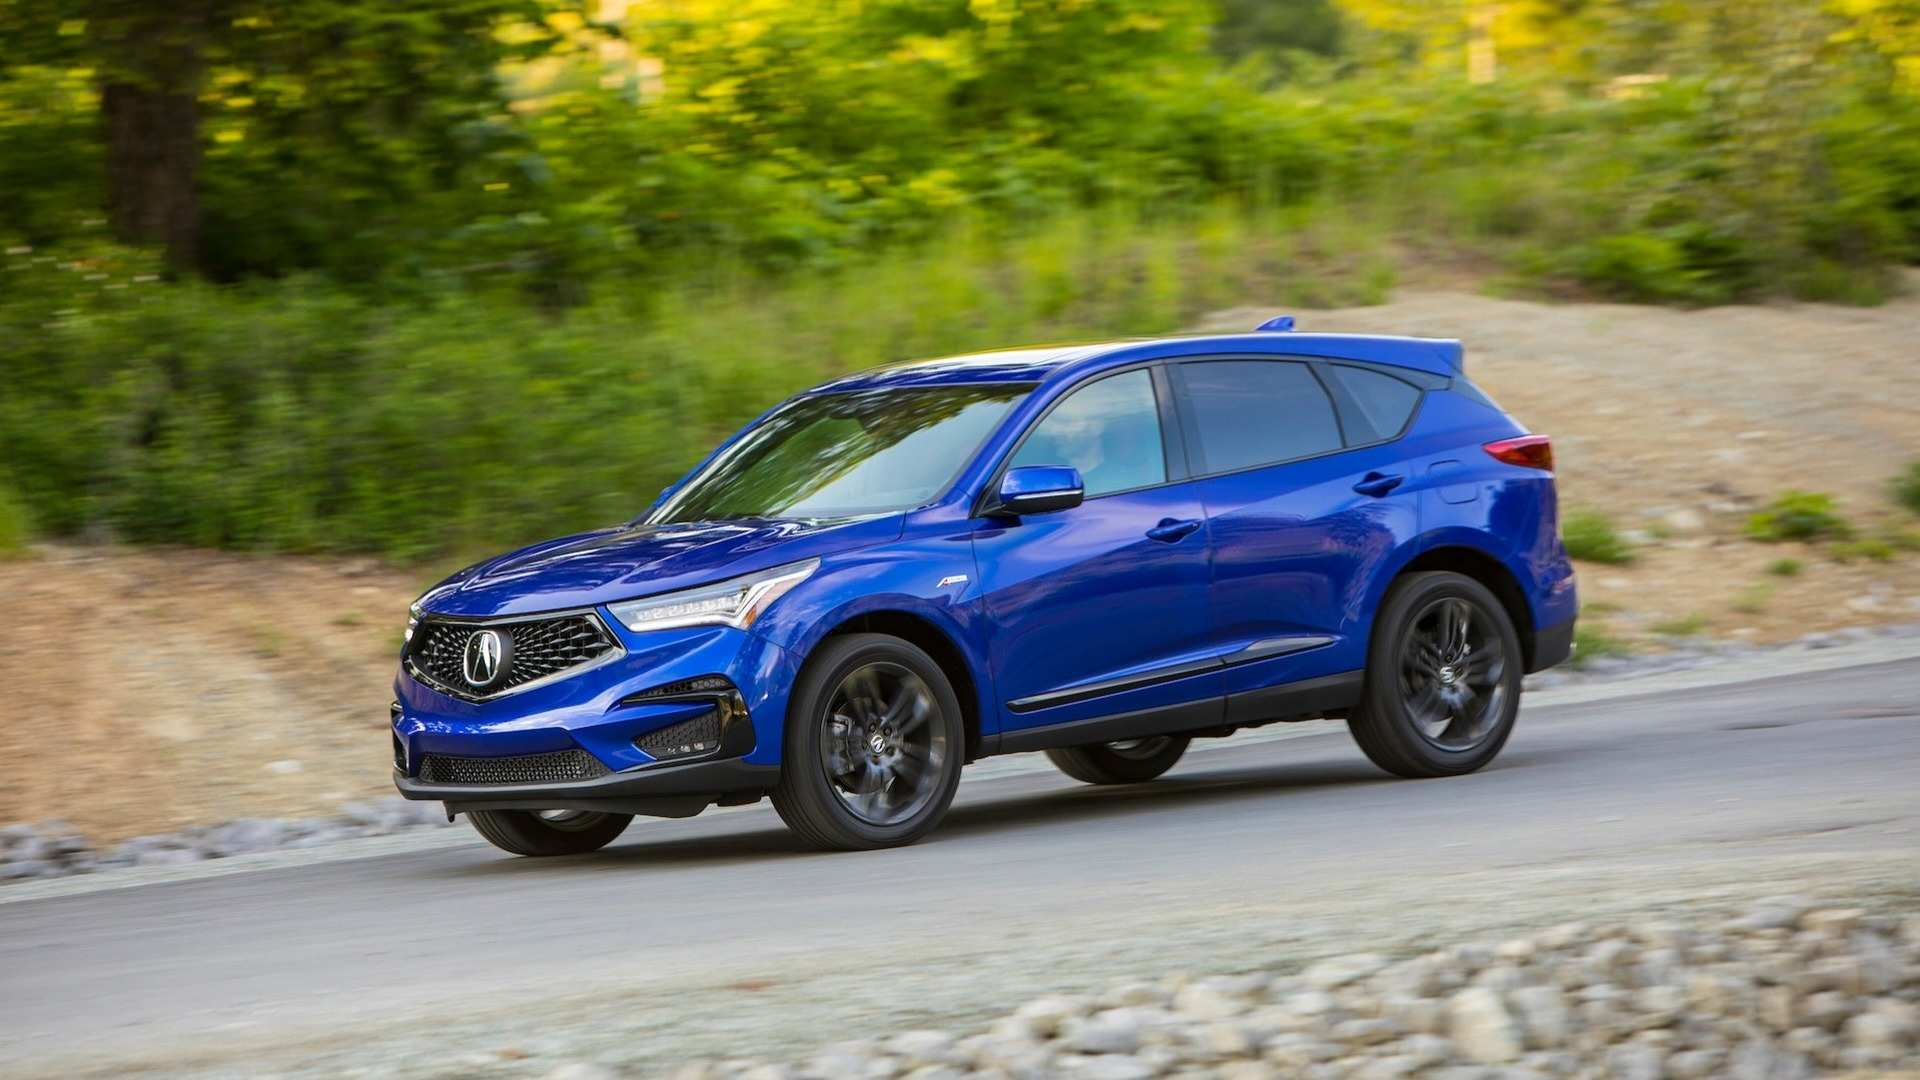 93 Gallery of Acura 2019 Crossover First Drive Release with Acura 2019 Crossover First Drive